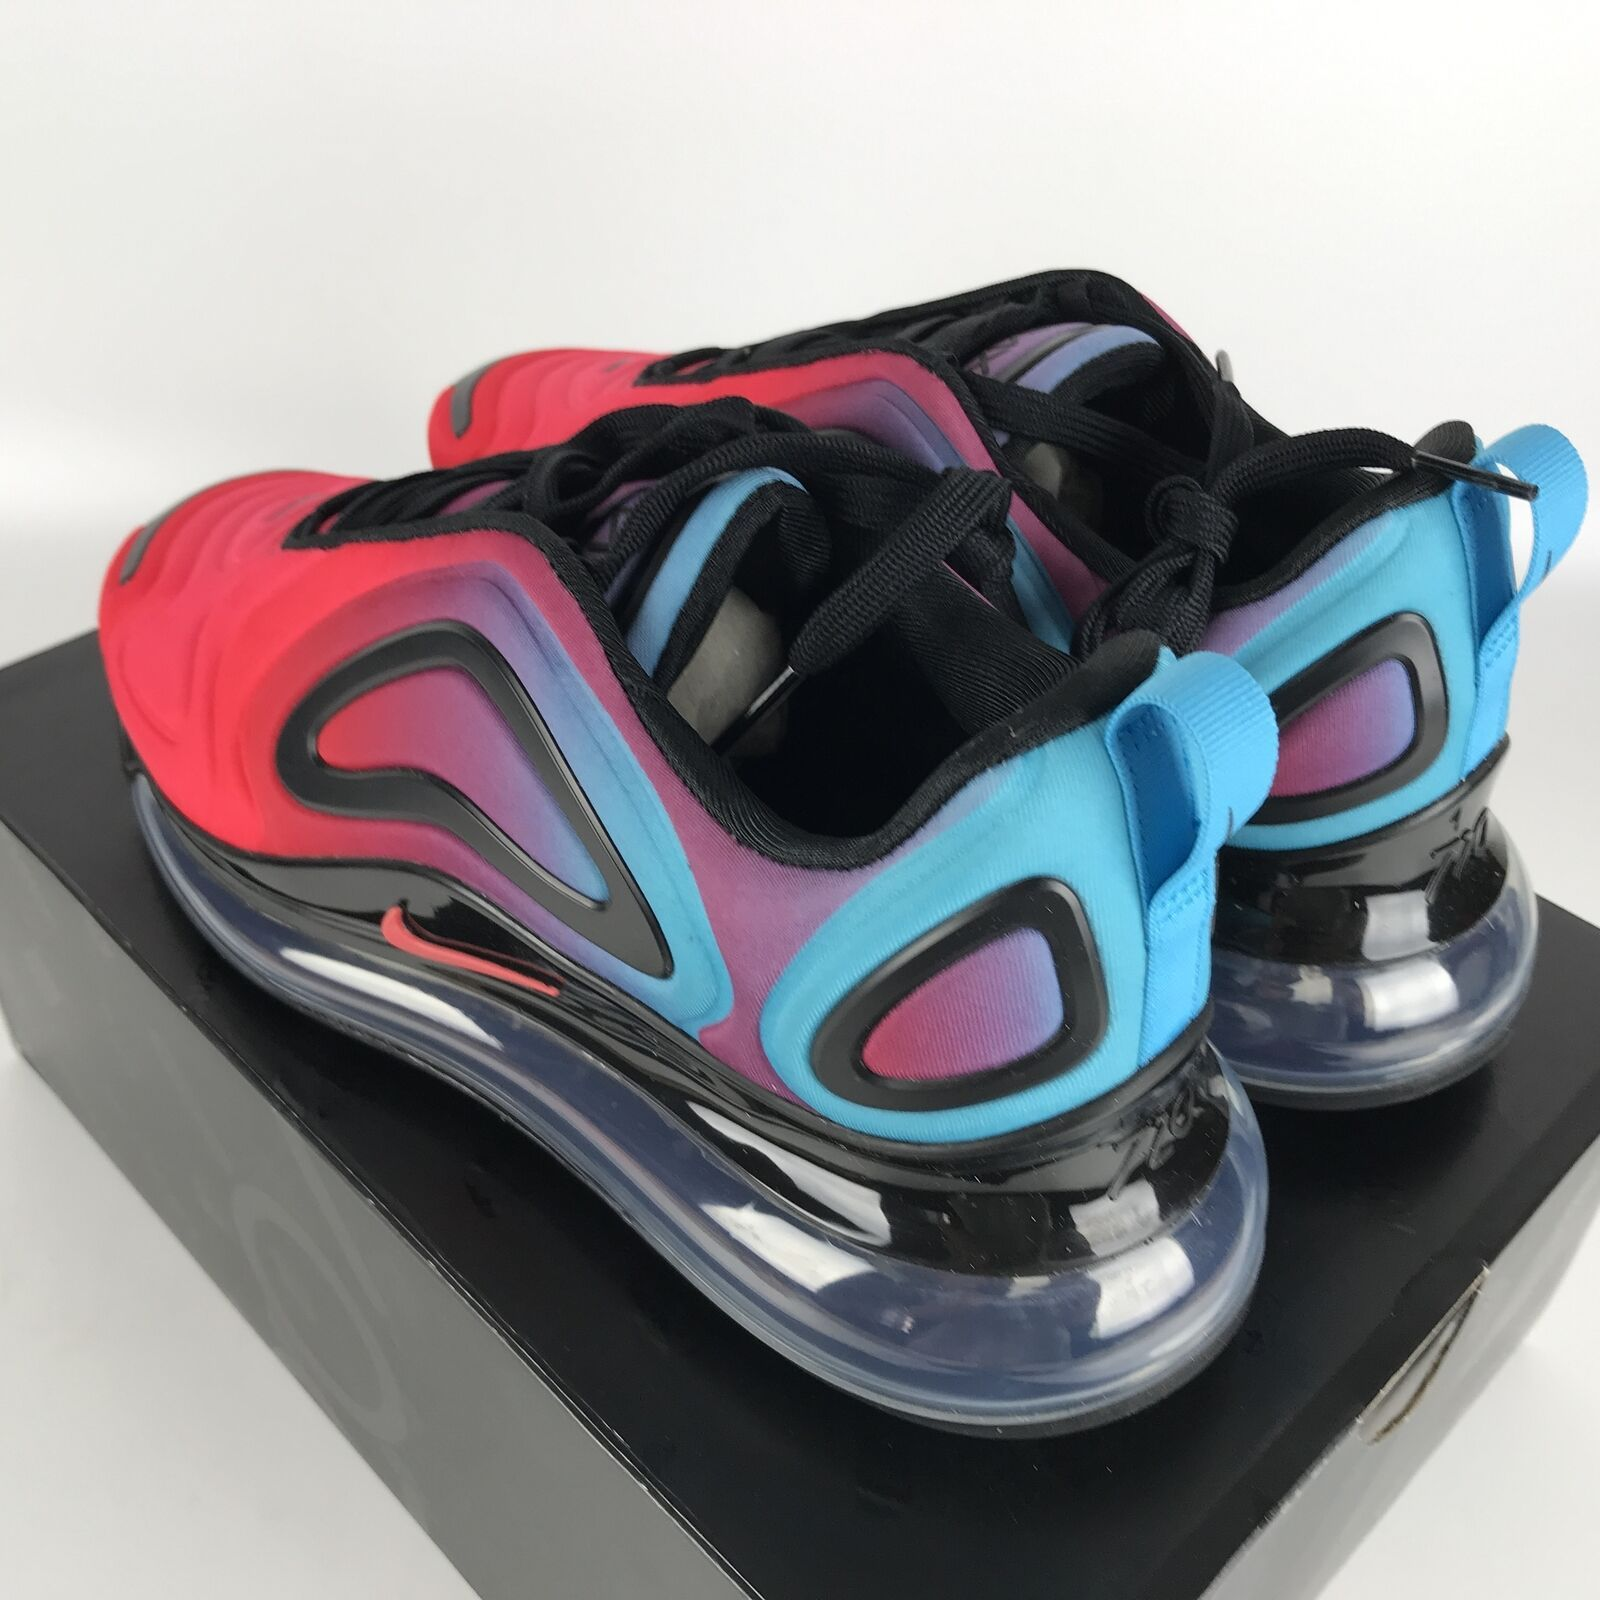 Nike Air Max 720 Running Shoes 8 Gradient Red/Blue CJ0766 600 image 4